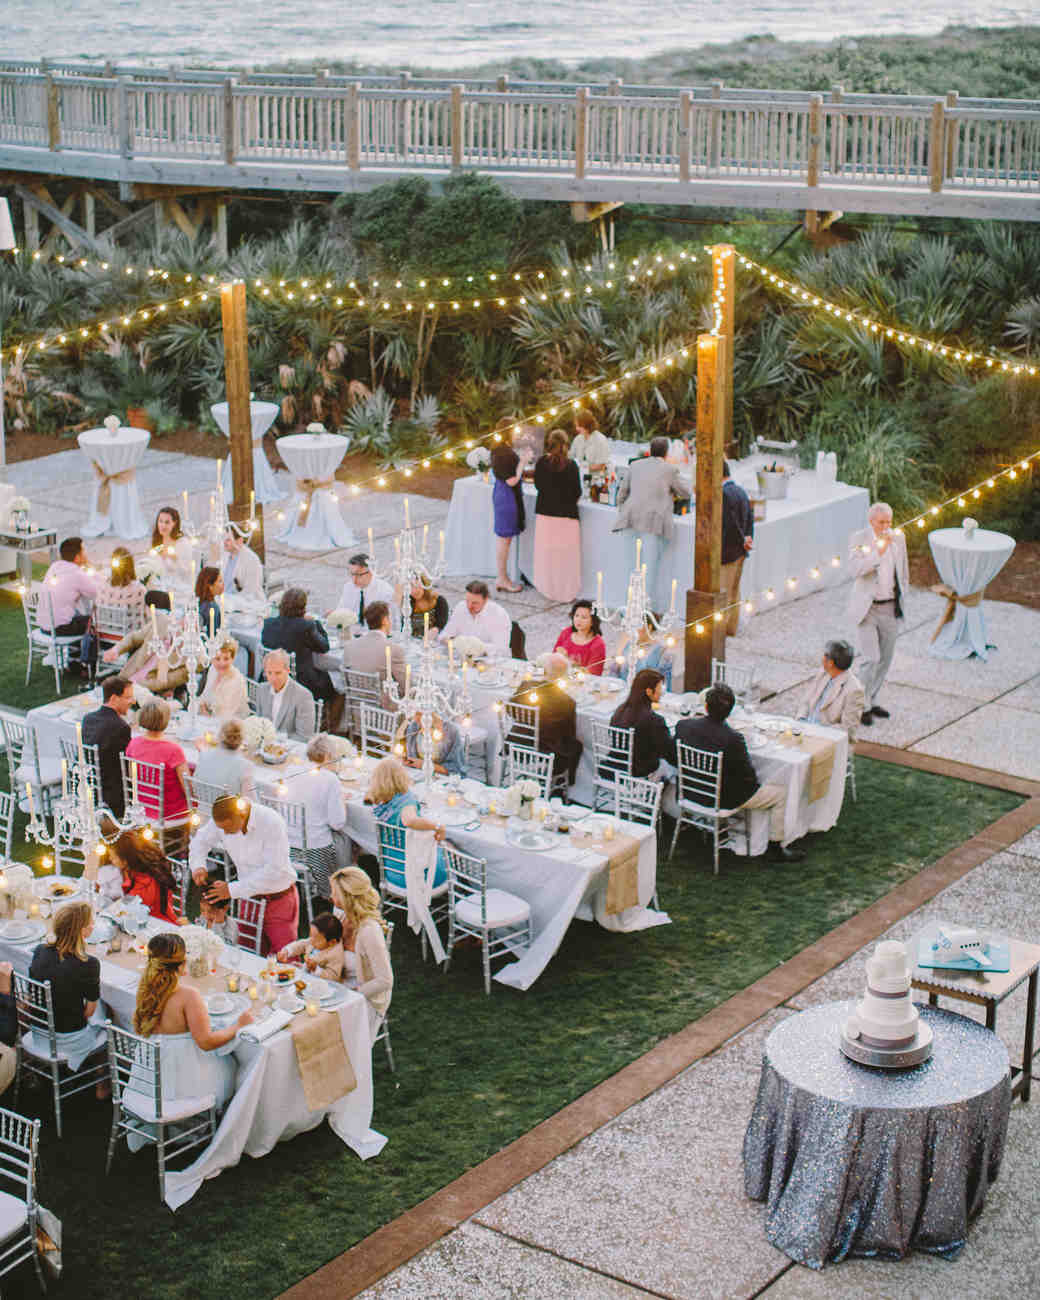 Guests Seated at Outdoor Reception